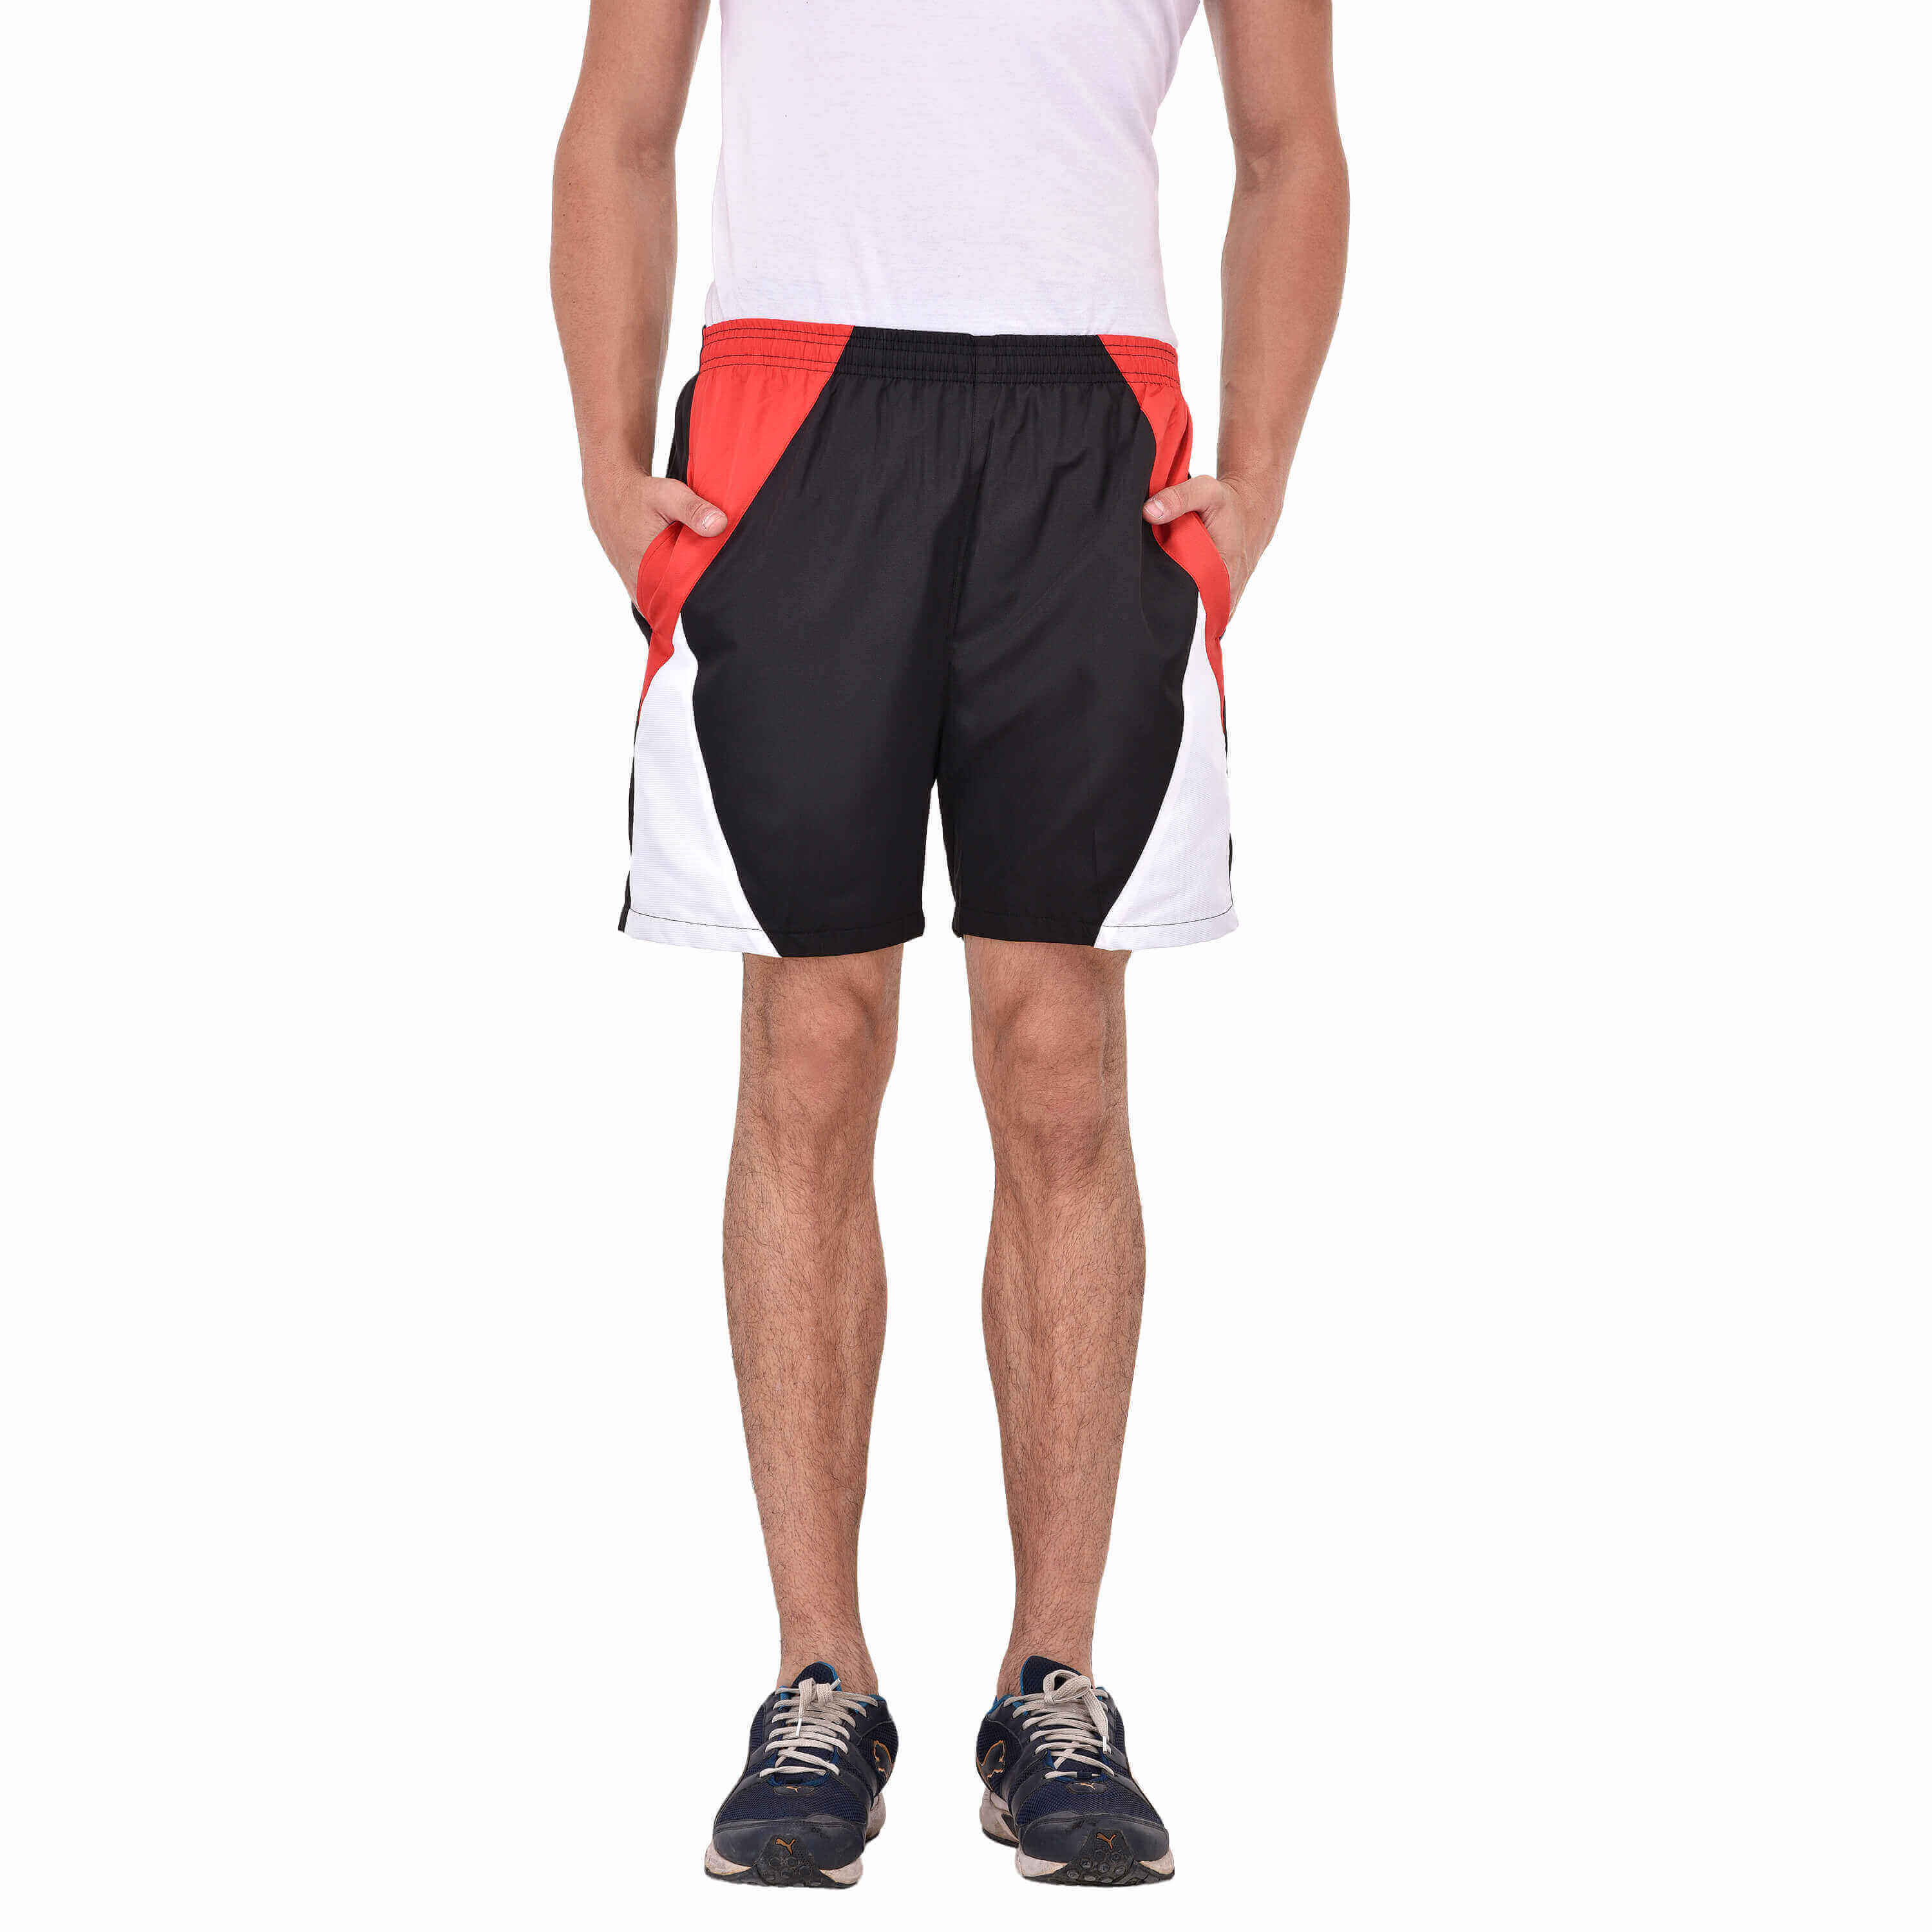 Soccer Shorts Manufacturers in Patna